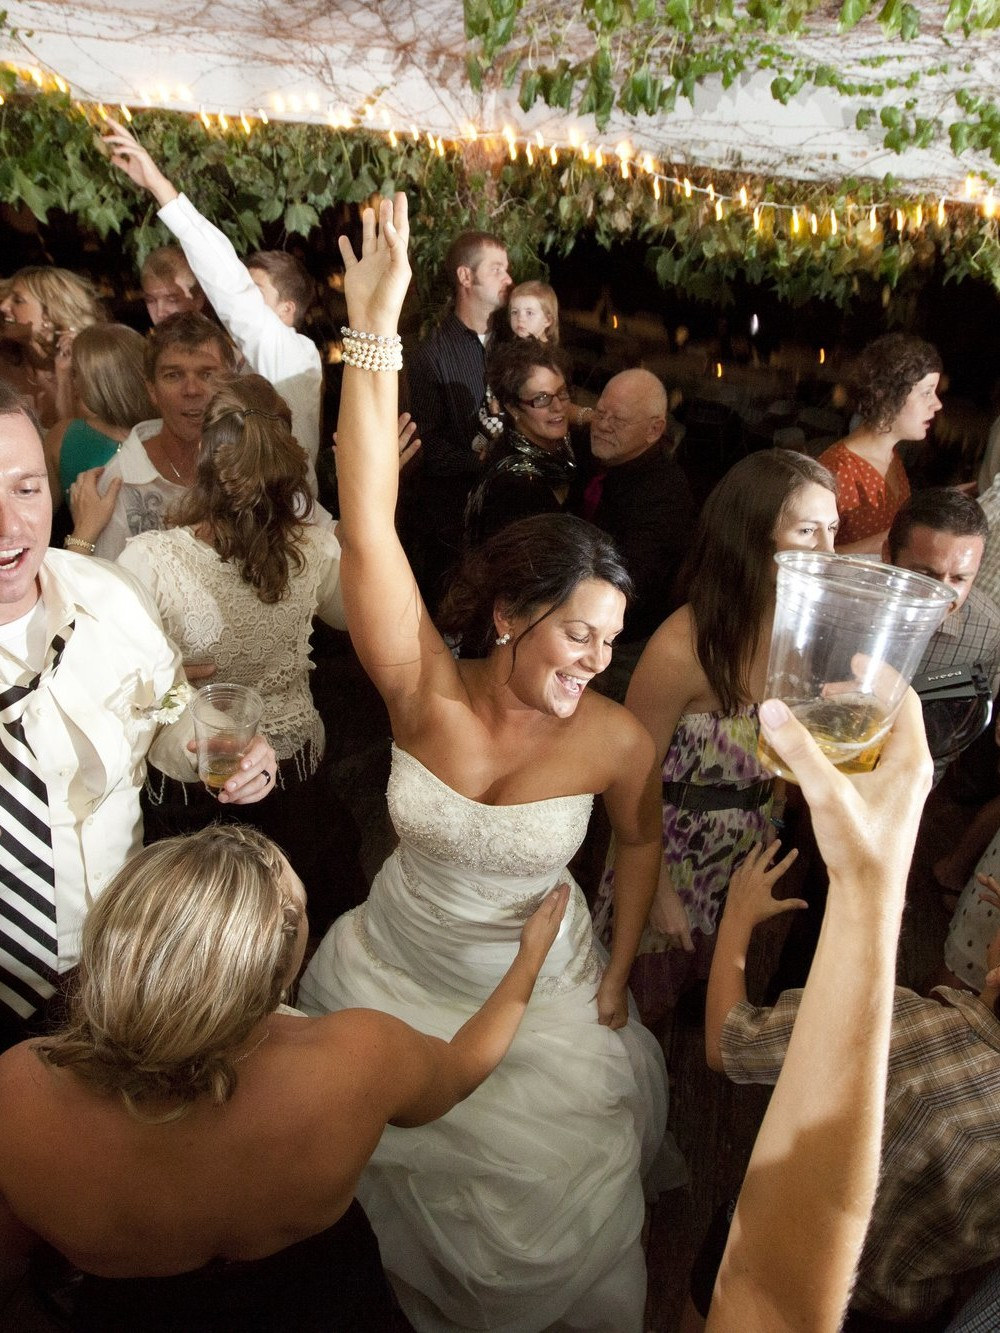 Dueling Pianos: Great Wedding Entertainment Or Not?